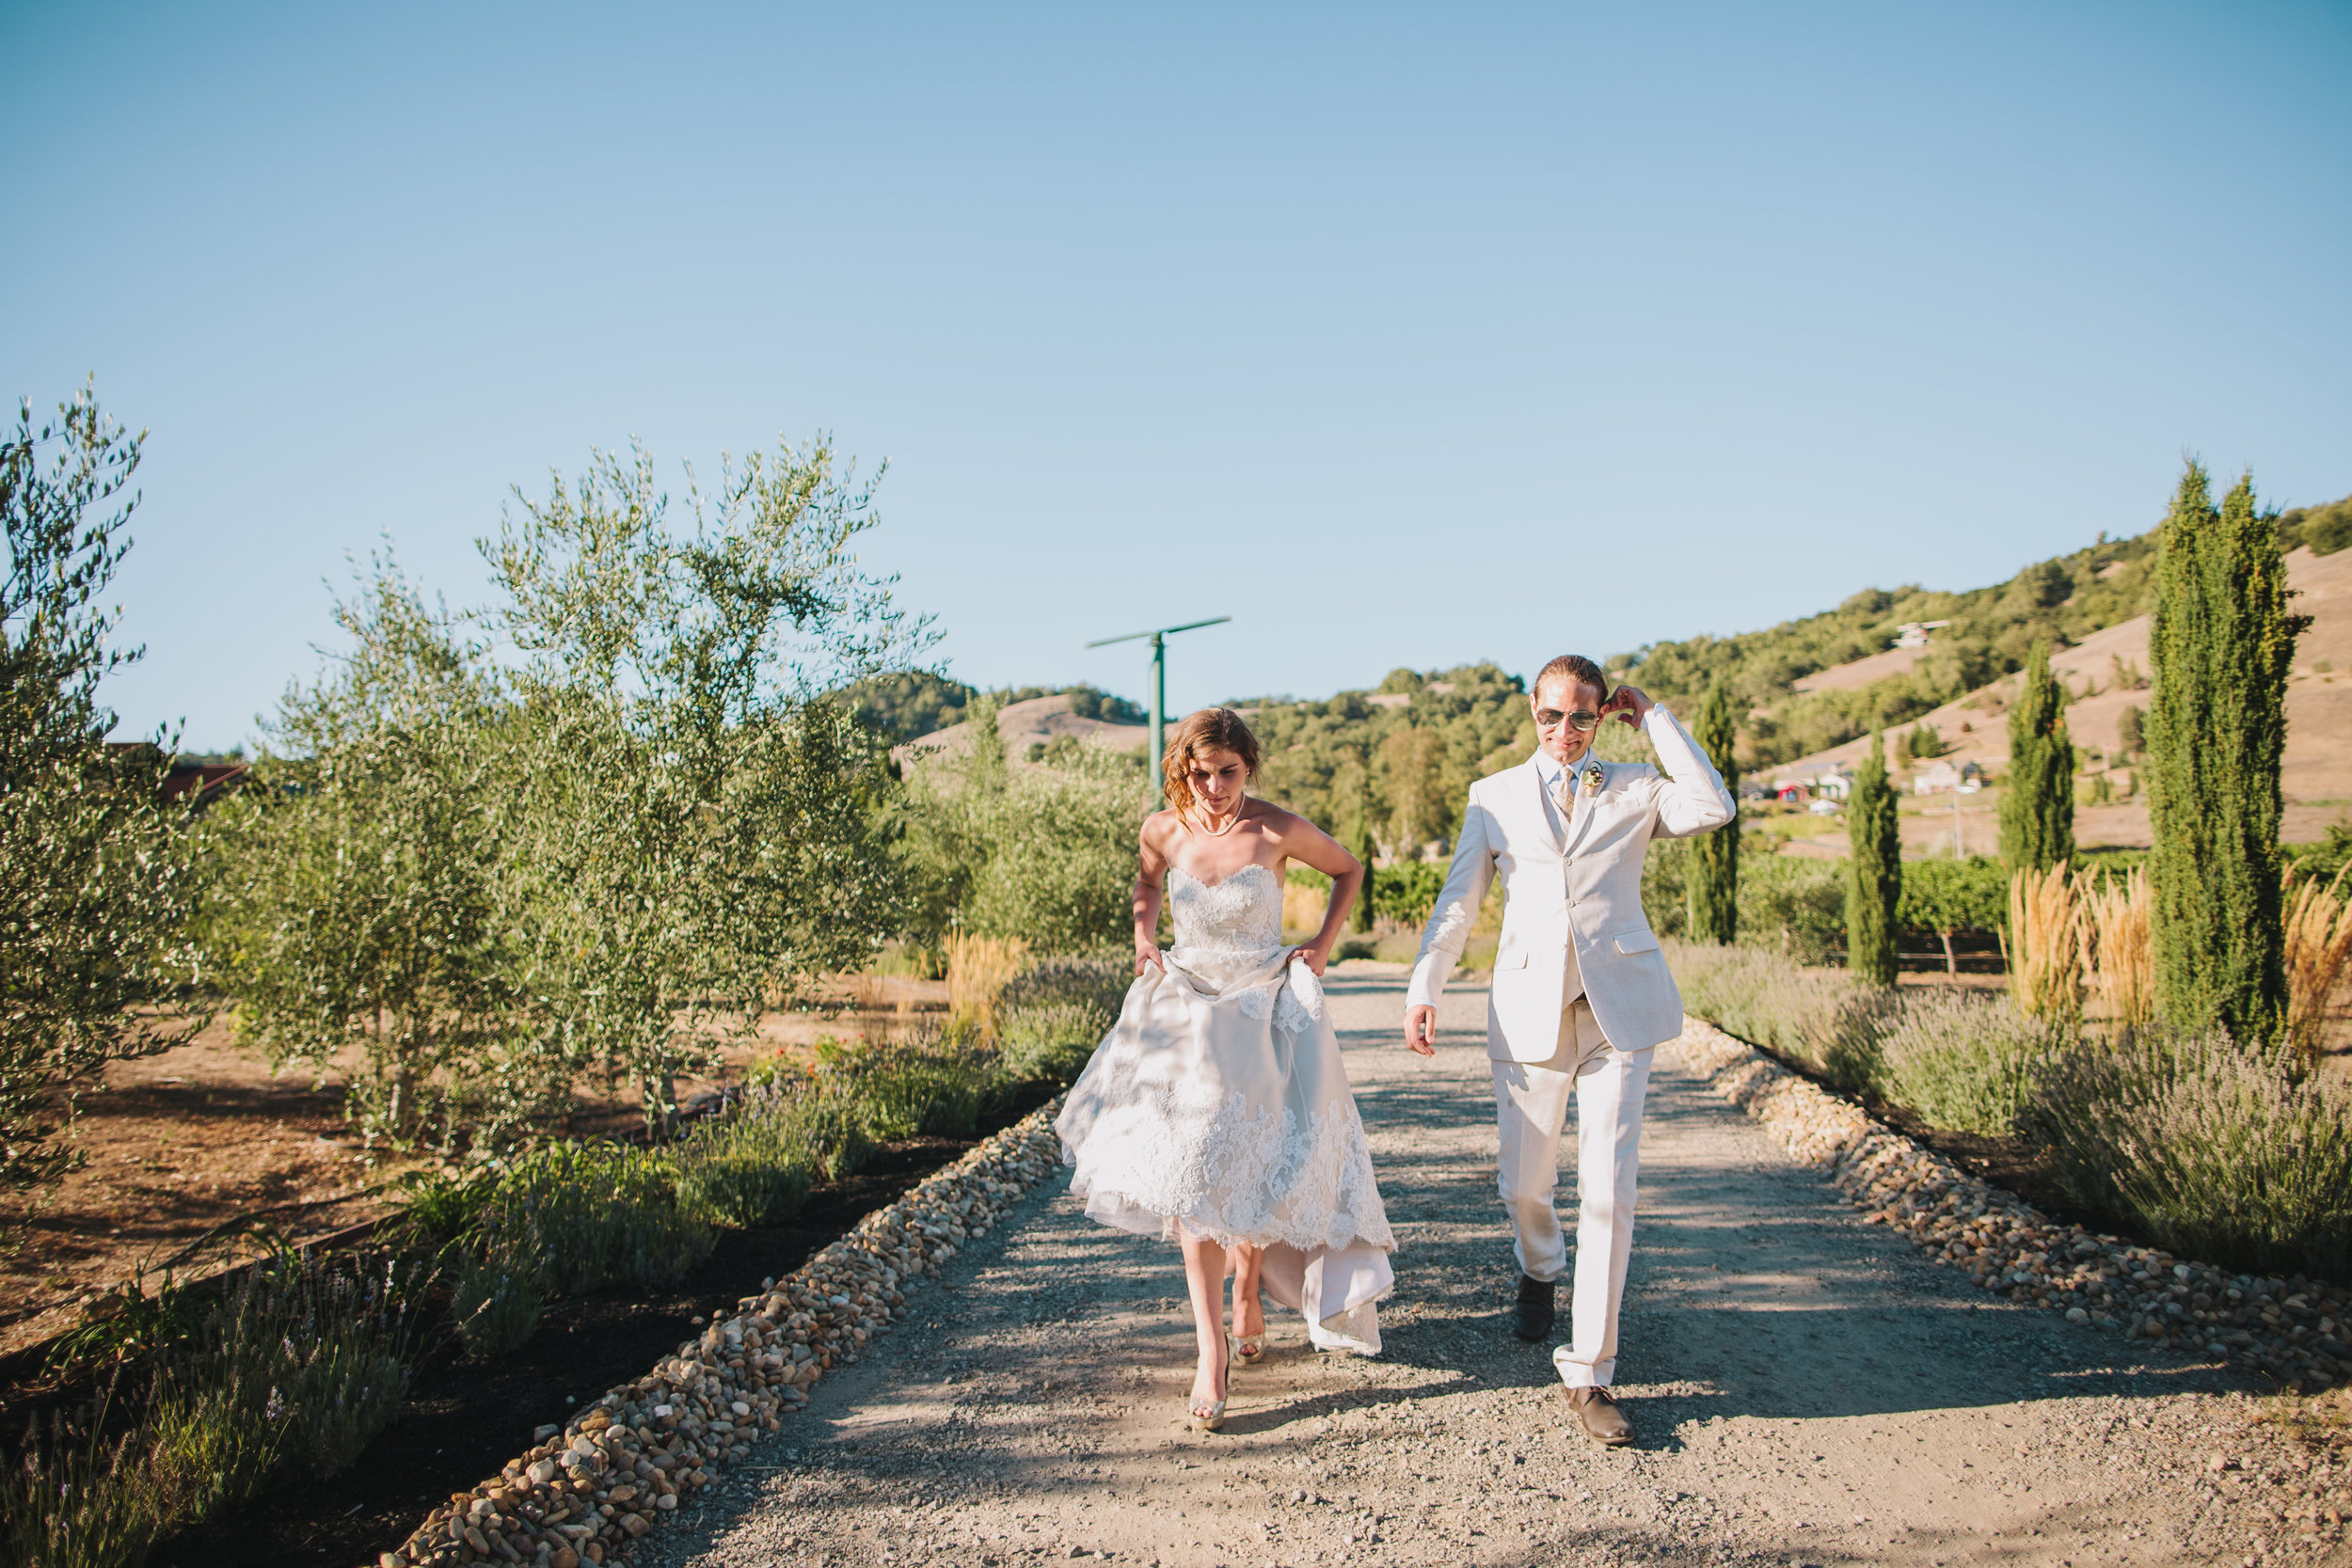 California-Wedding-Photography-Pangtography